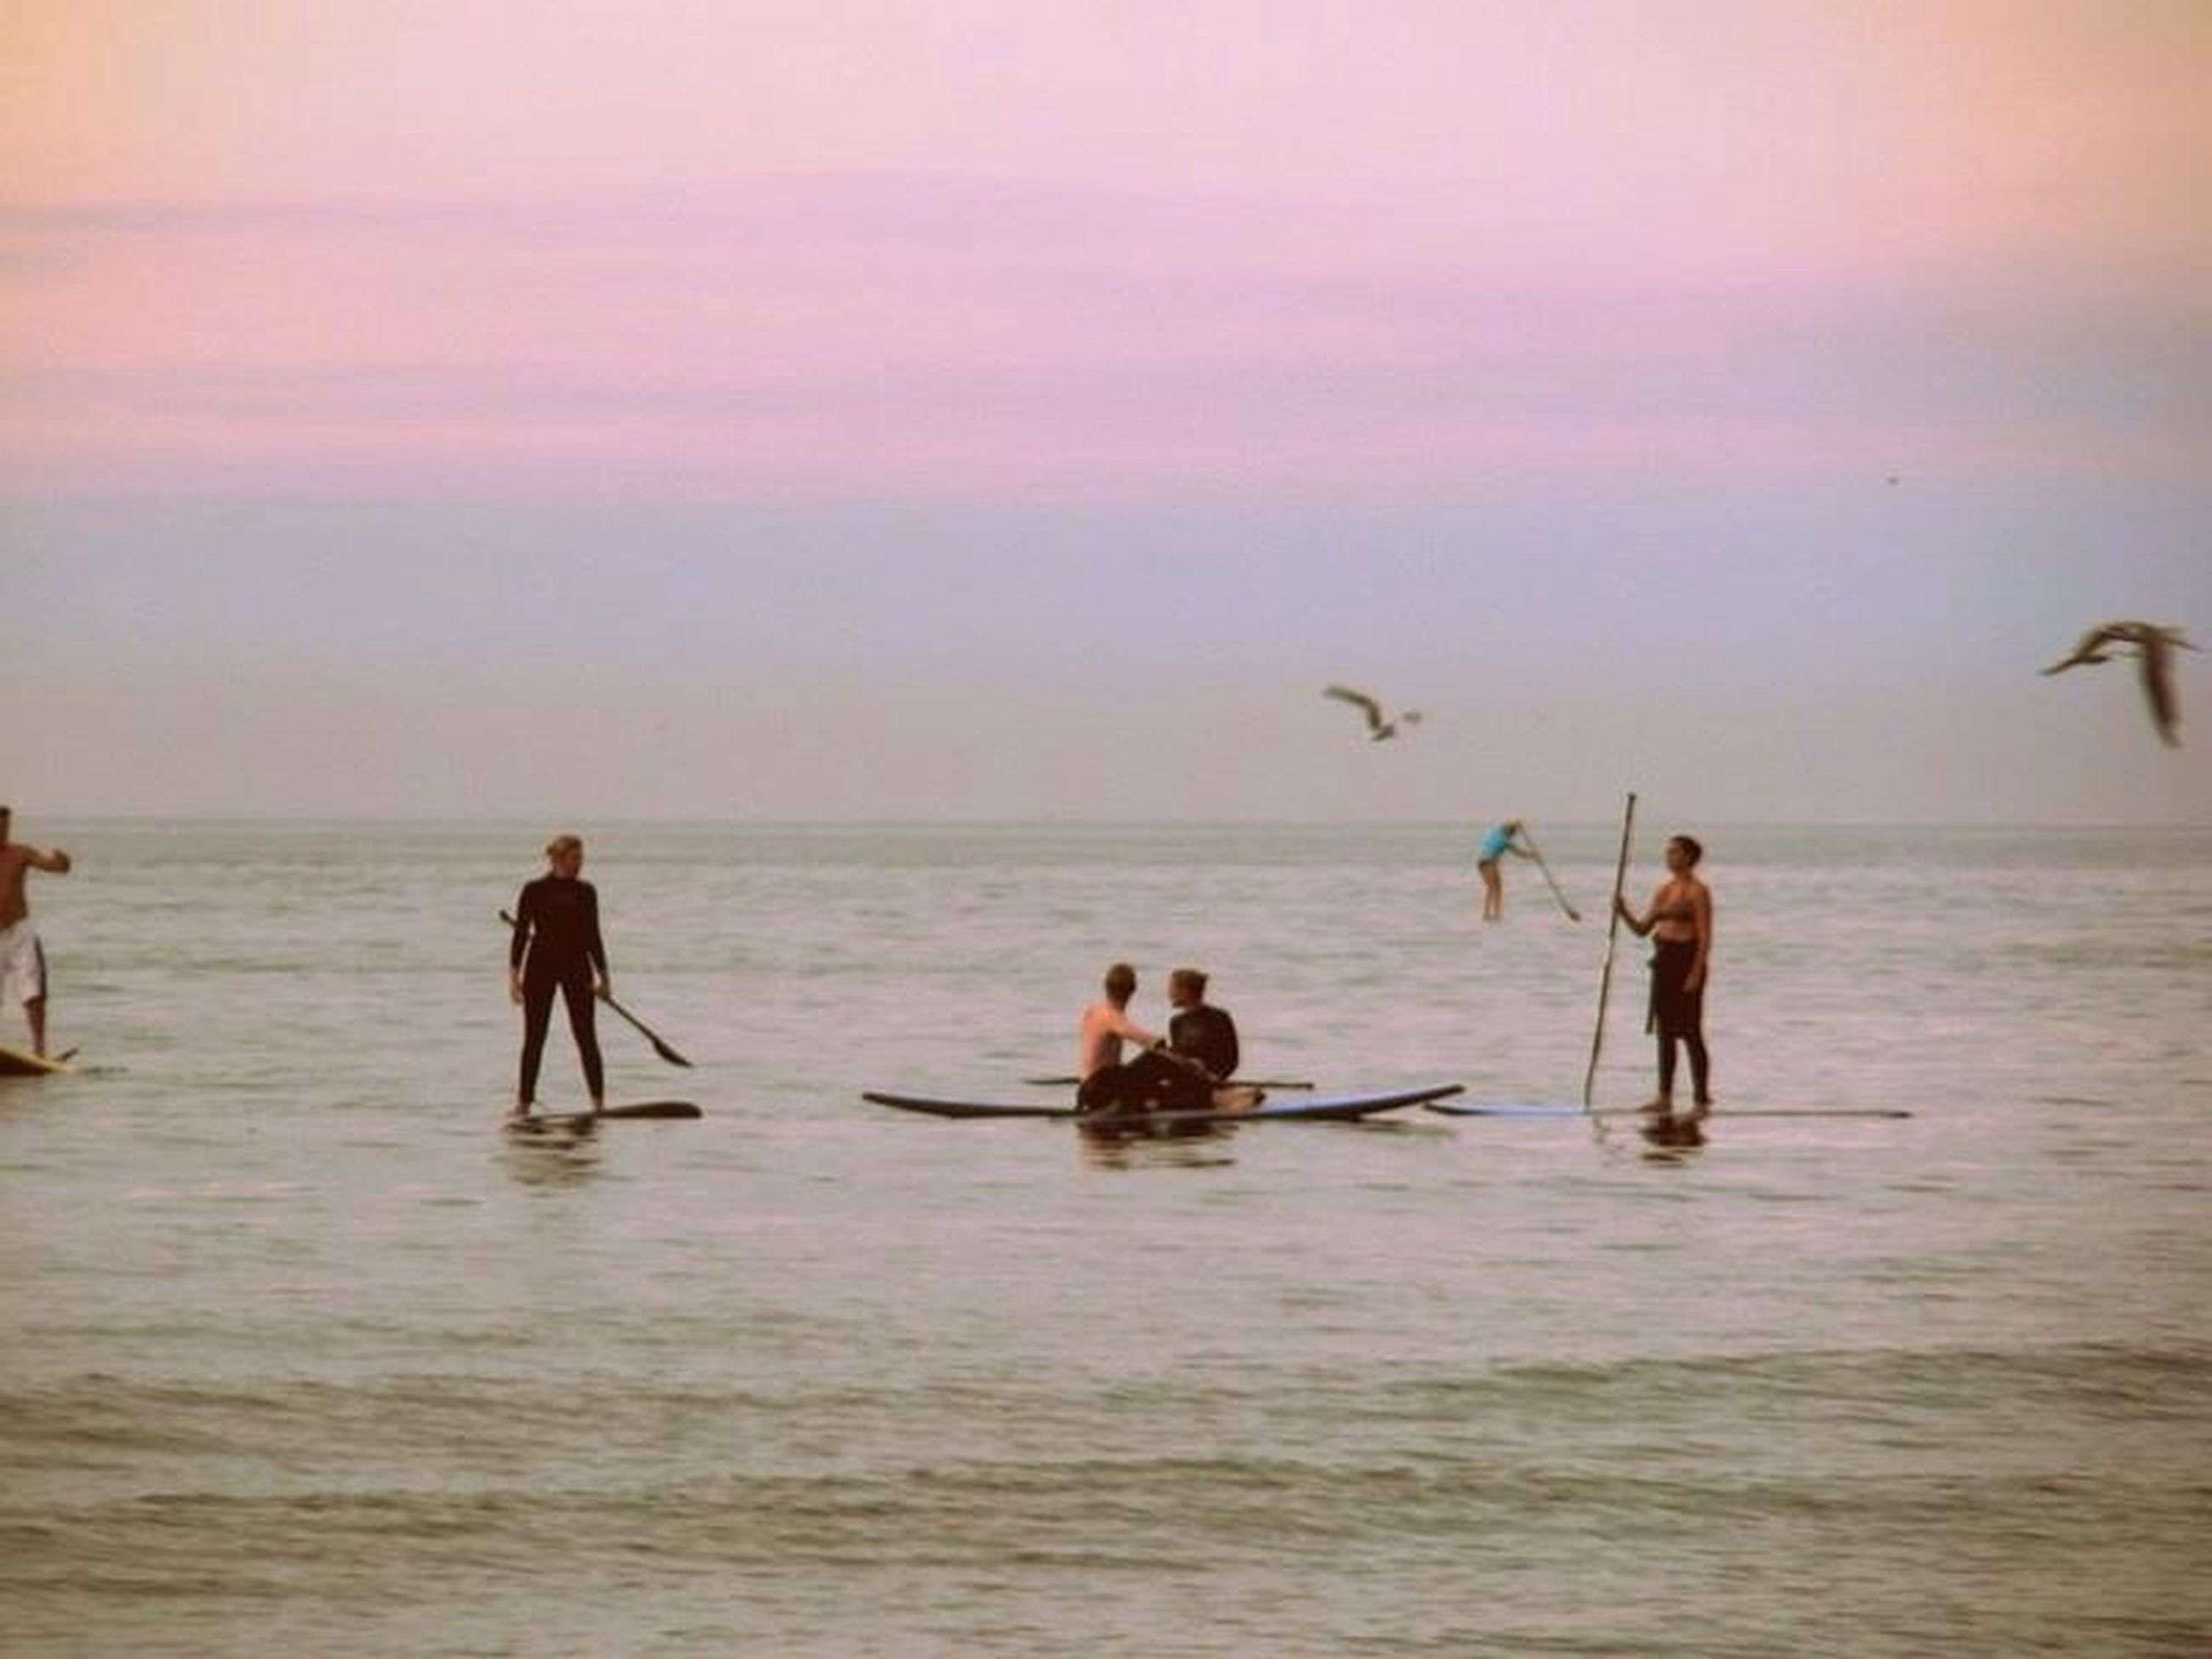 sea, water, horizon over water, leisure activity, lifestyles, beach, togetherness, vacations, men, enjoyment, waterfront, sunset, person, sky, shore, nature, beauty in nature, scenics, bonding